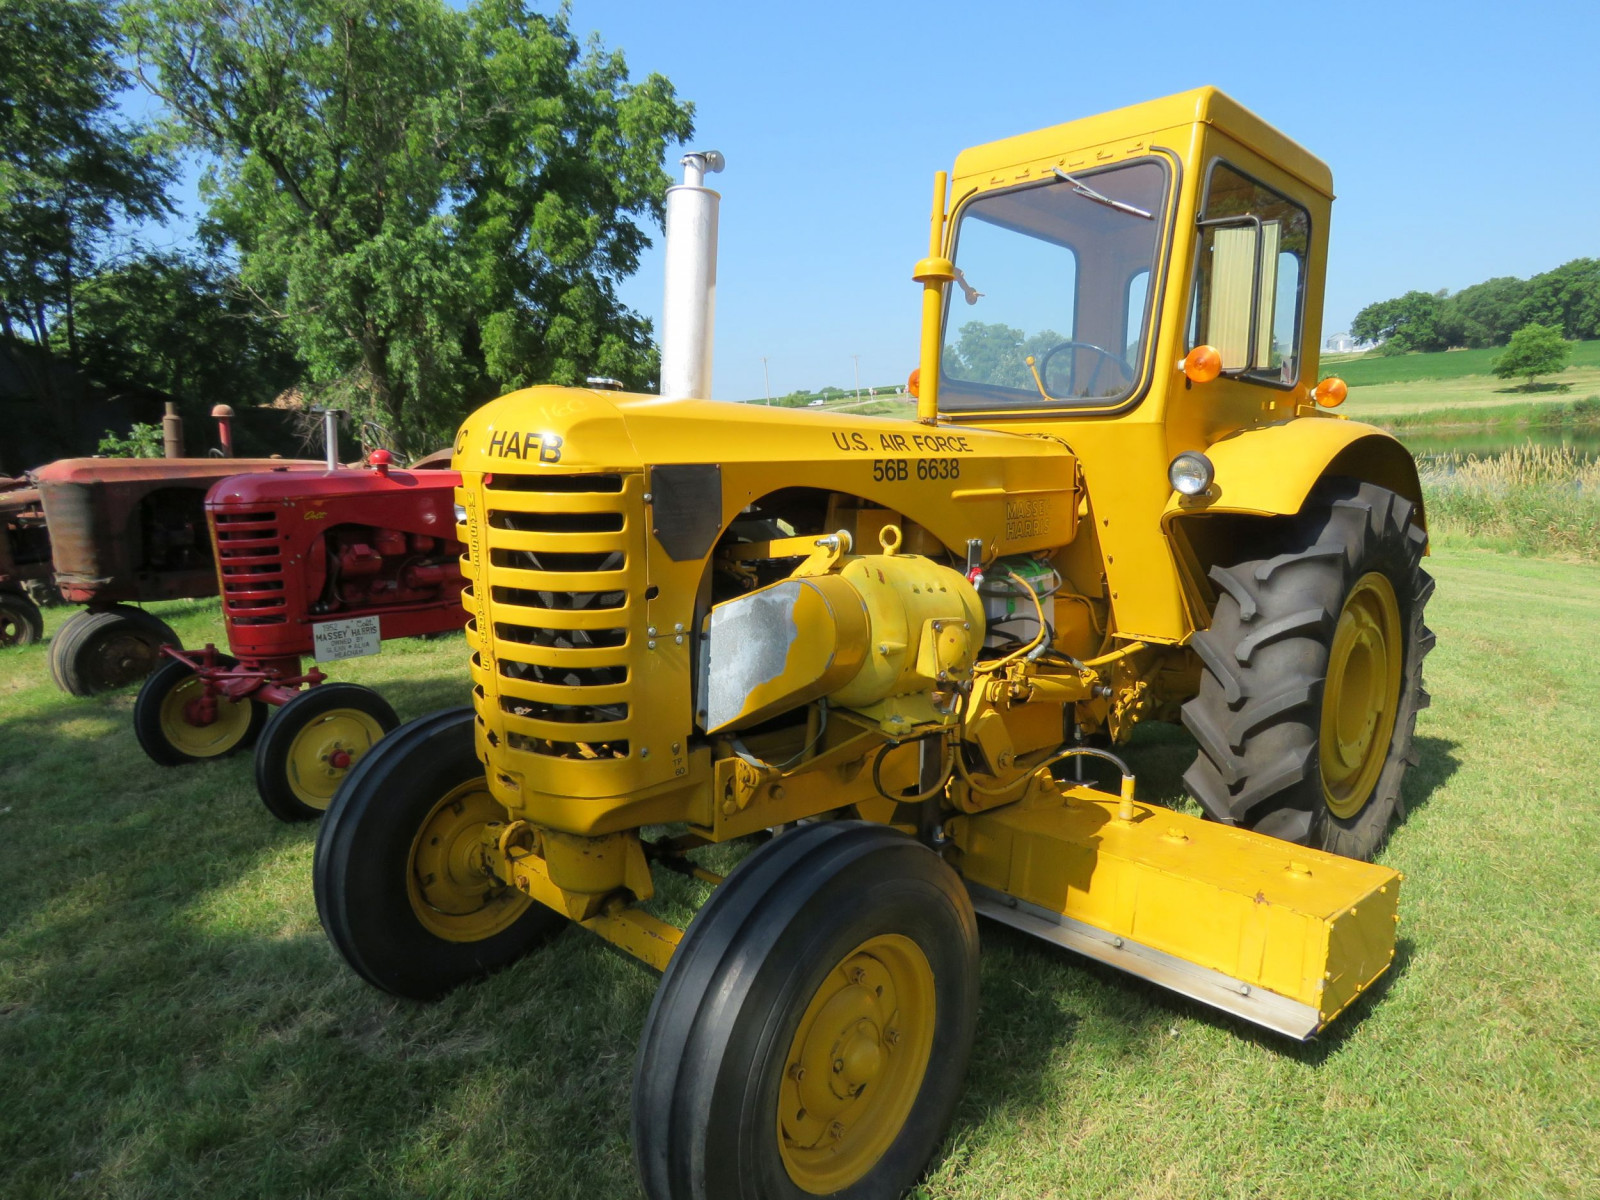 1956 Massey Harris 333 Tractor with Sabre Magnetic Sweeper - Image 13